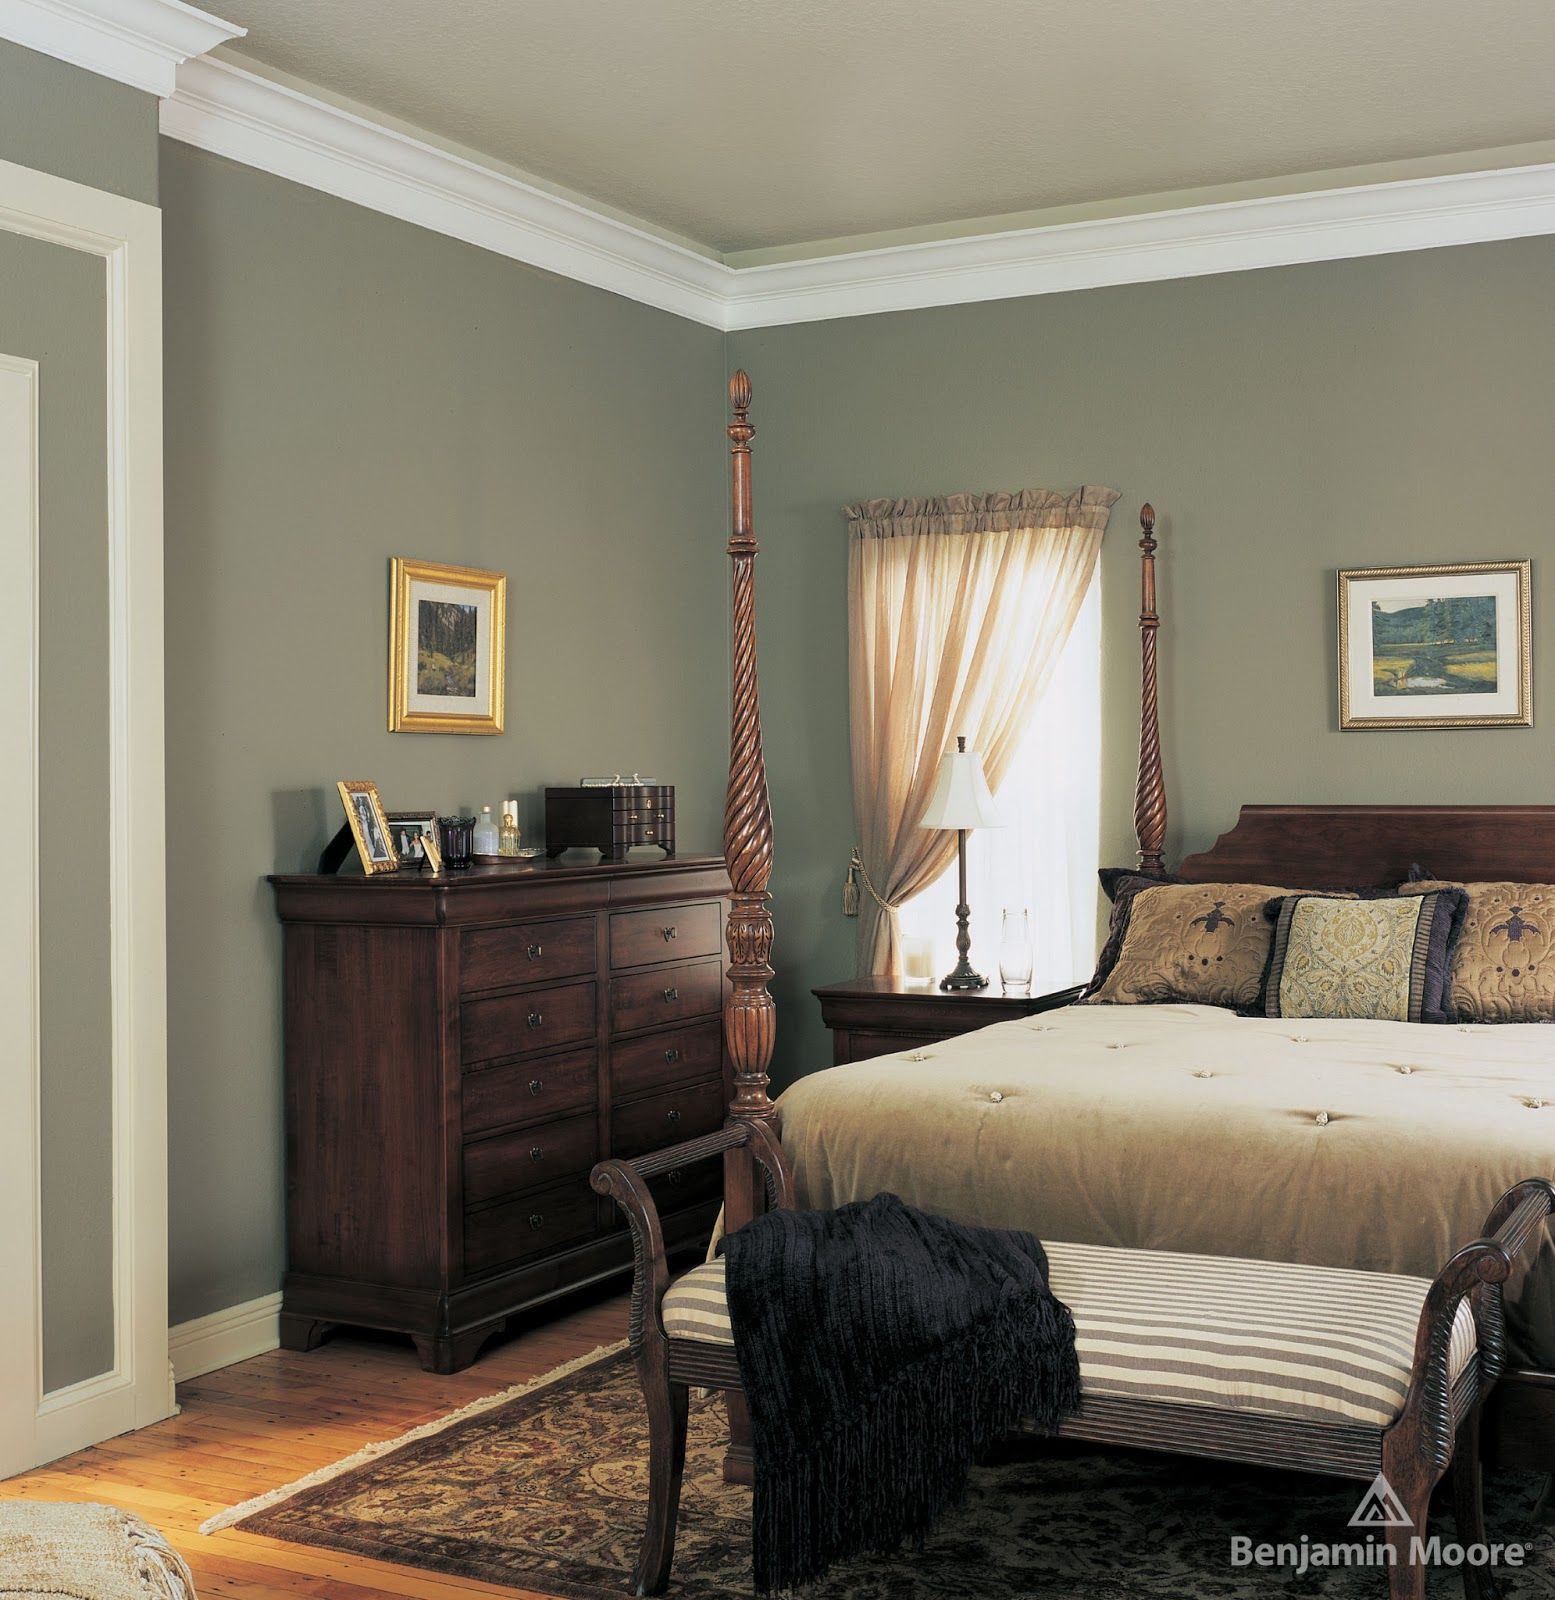 Bedroom Decorating Ideas Wallpaper Victorian Wallpaper Bedroom Bedroom Window Blinds Ideas Bedroom Colour Green: 2139-40 Heather Gray By Benjamin Moore.